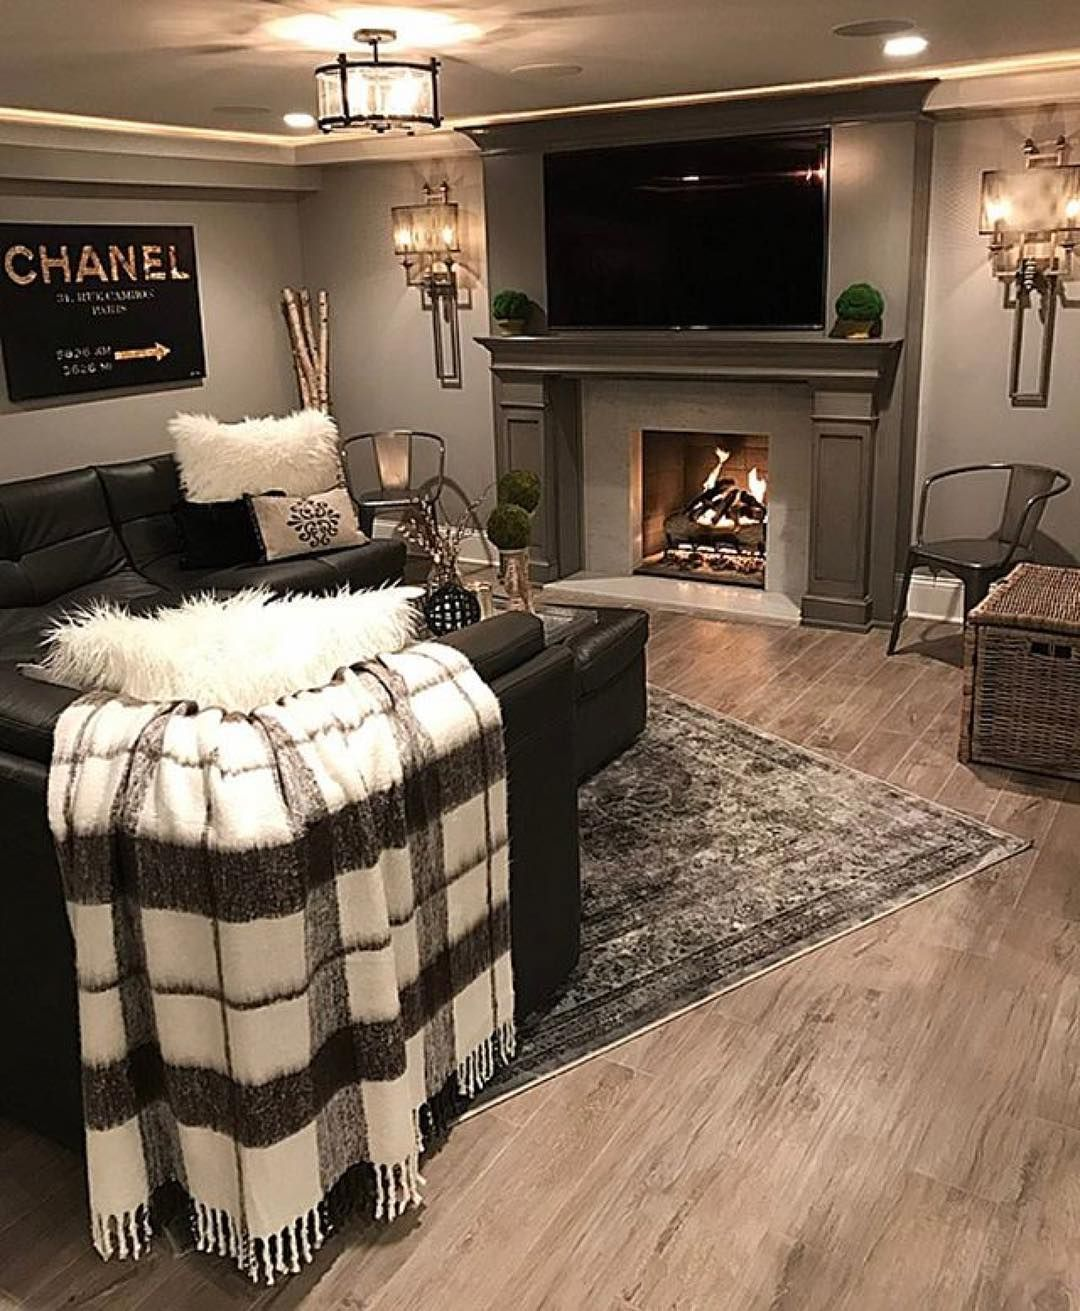 Basement Interior Design: Now This Is How A Basement Should Look. Warm Cozy And